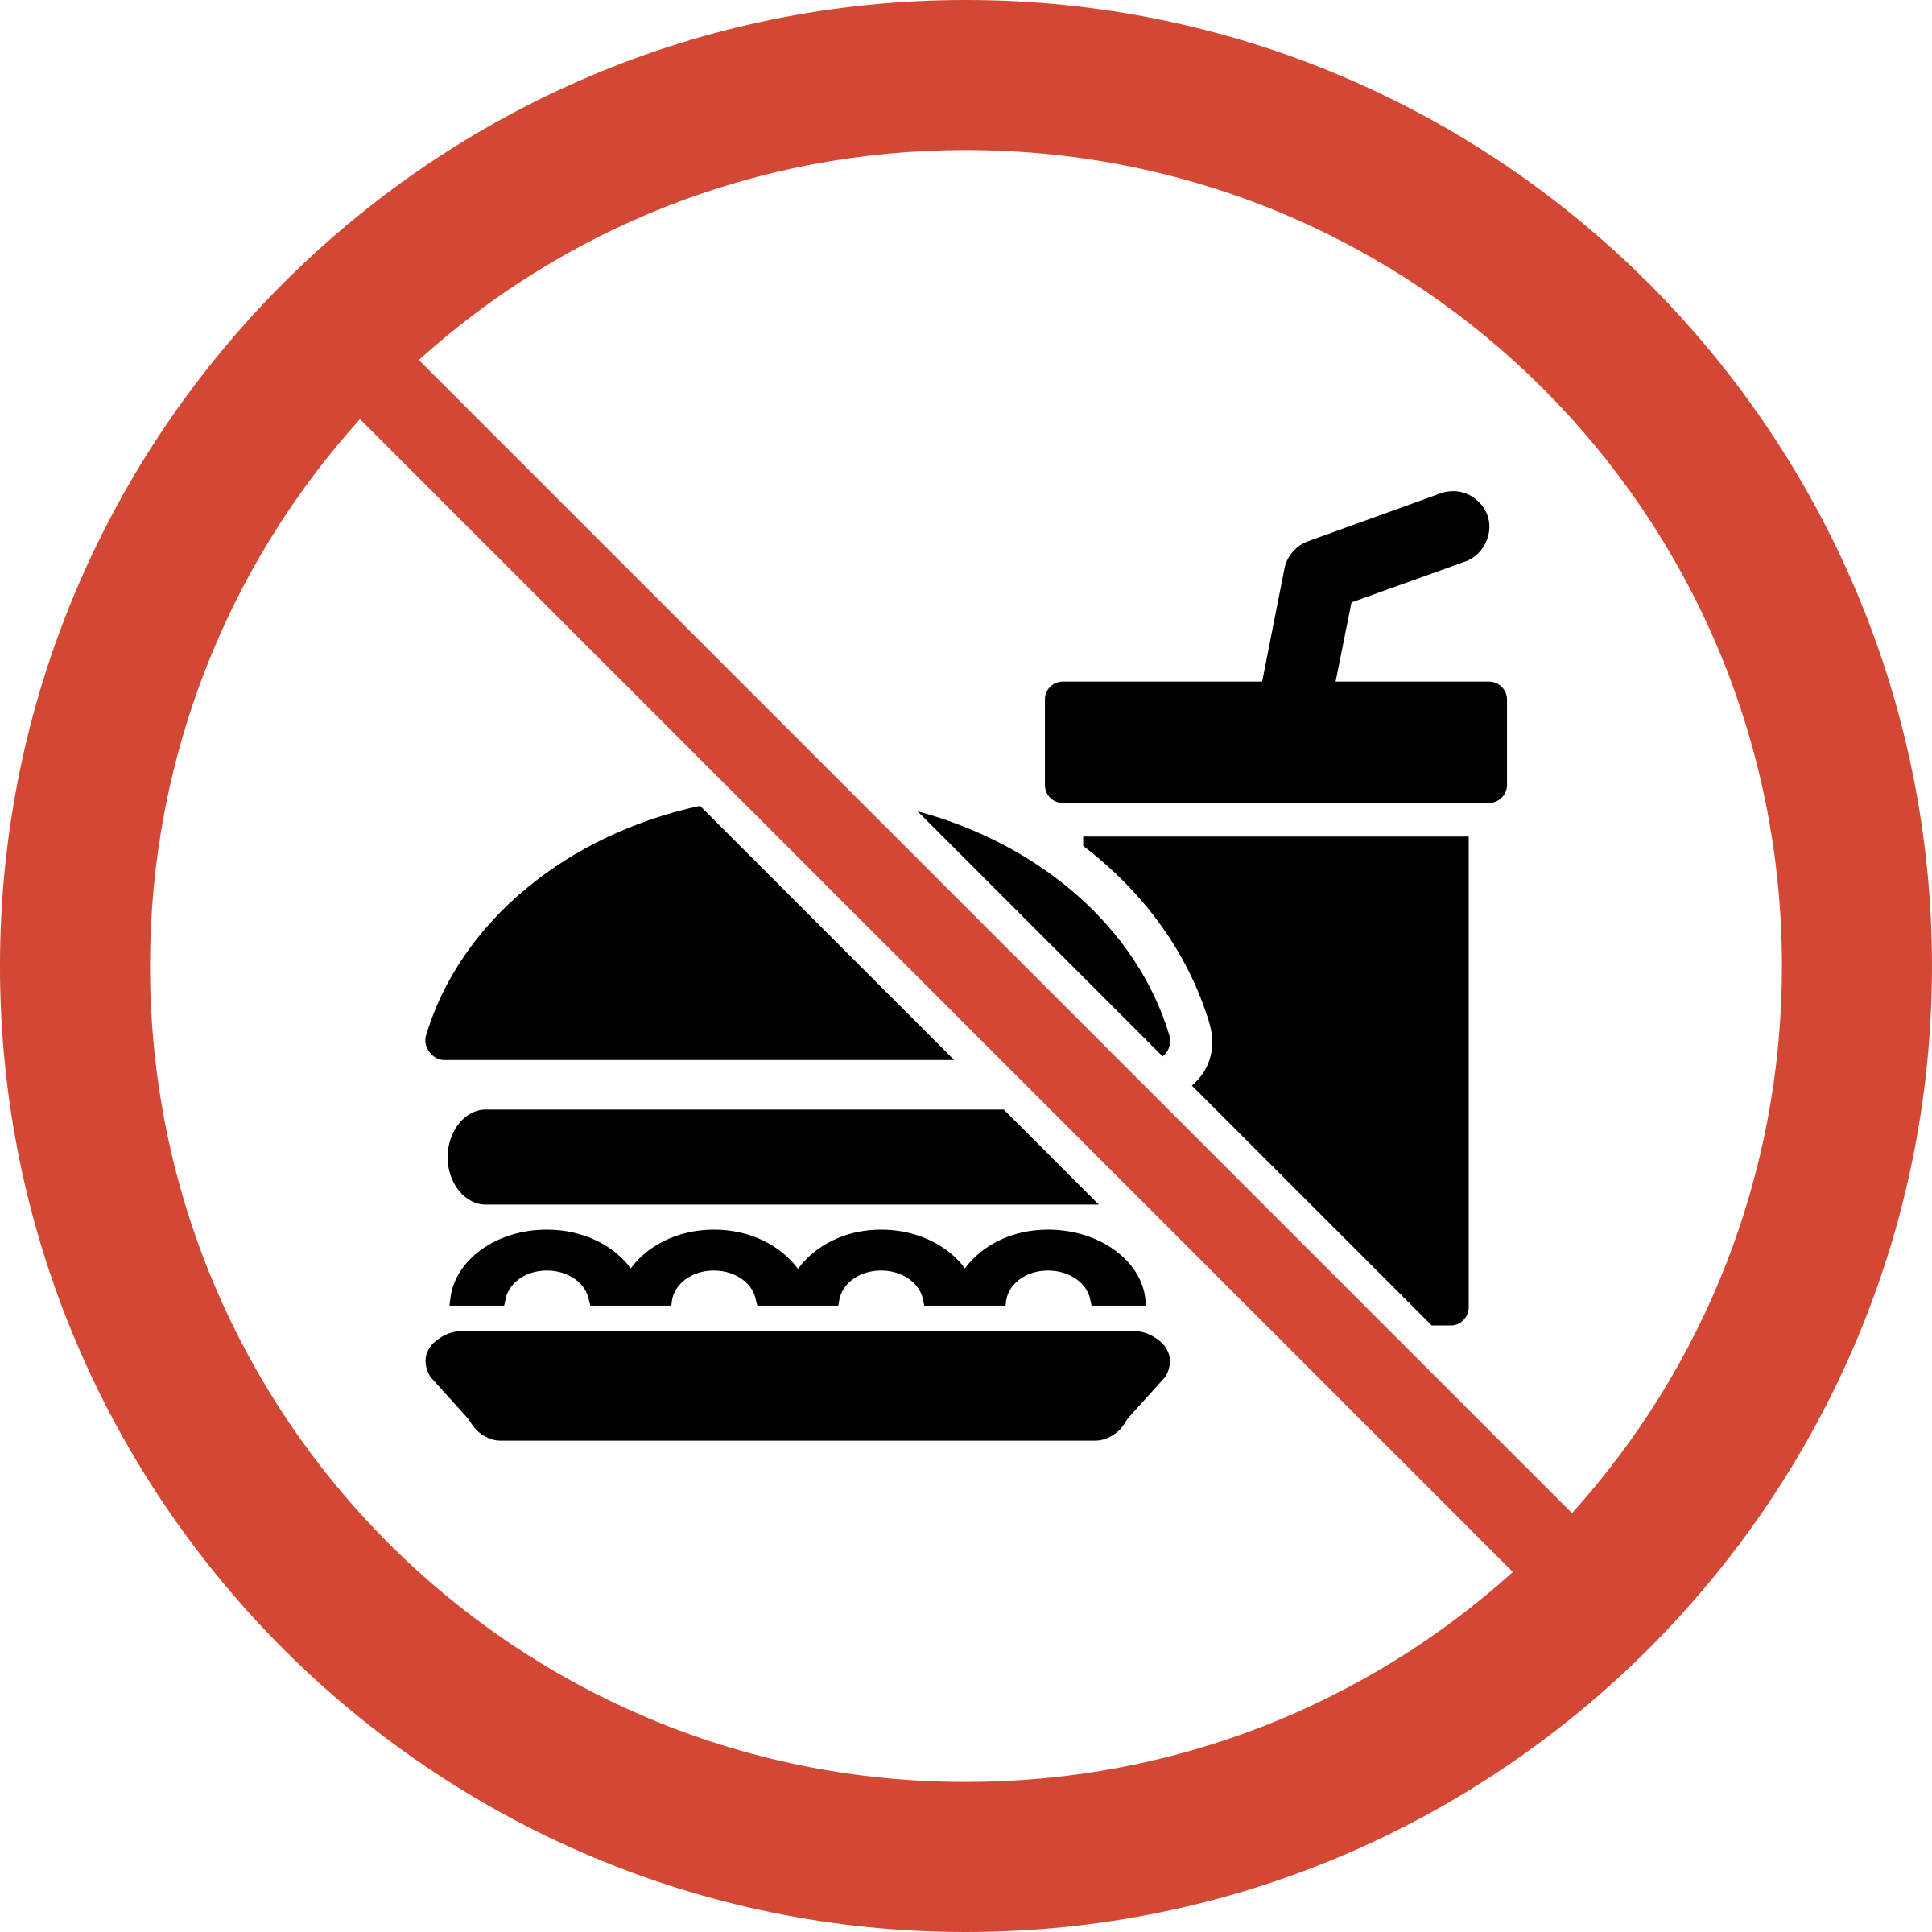 Prohibited Sign Prohibited Food Gallery Png